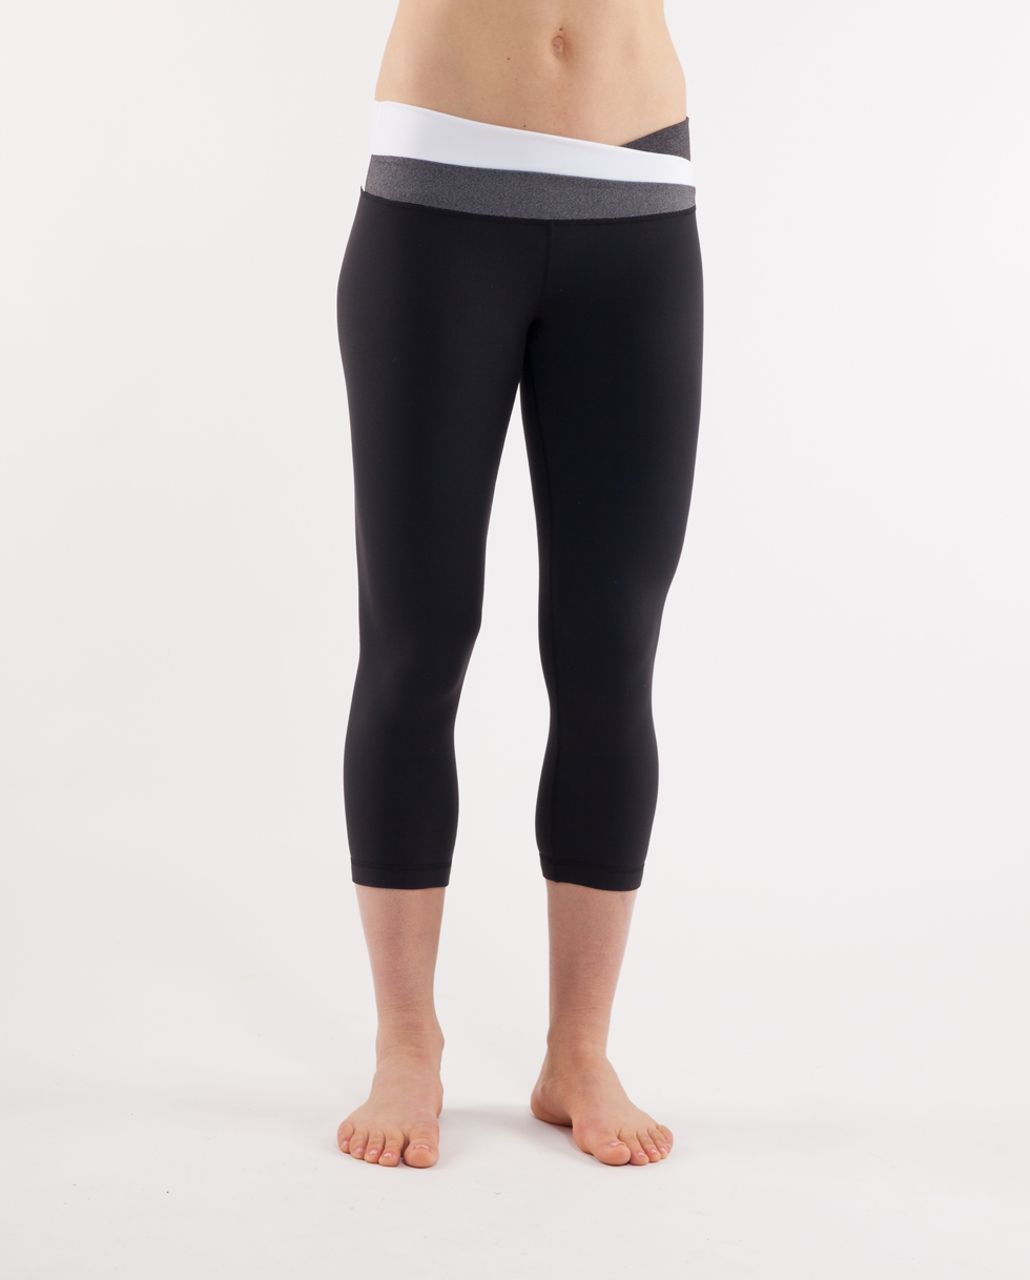 Lululemon Astro Wunder Under Crop - Black /  Heathered Black /  White